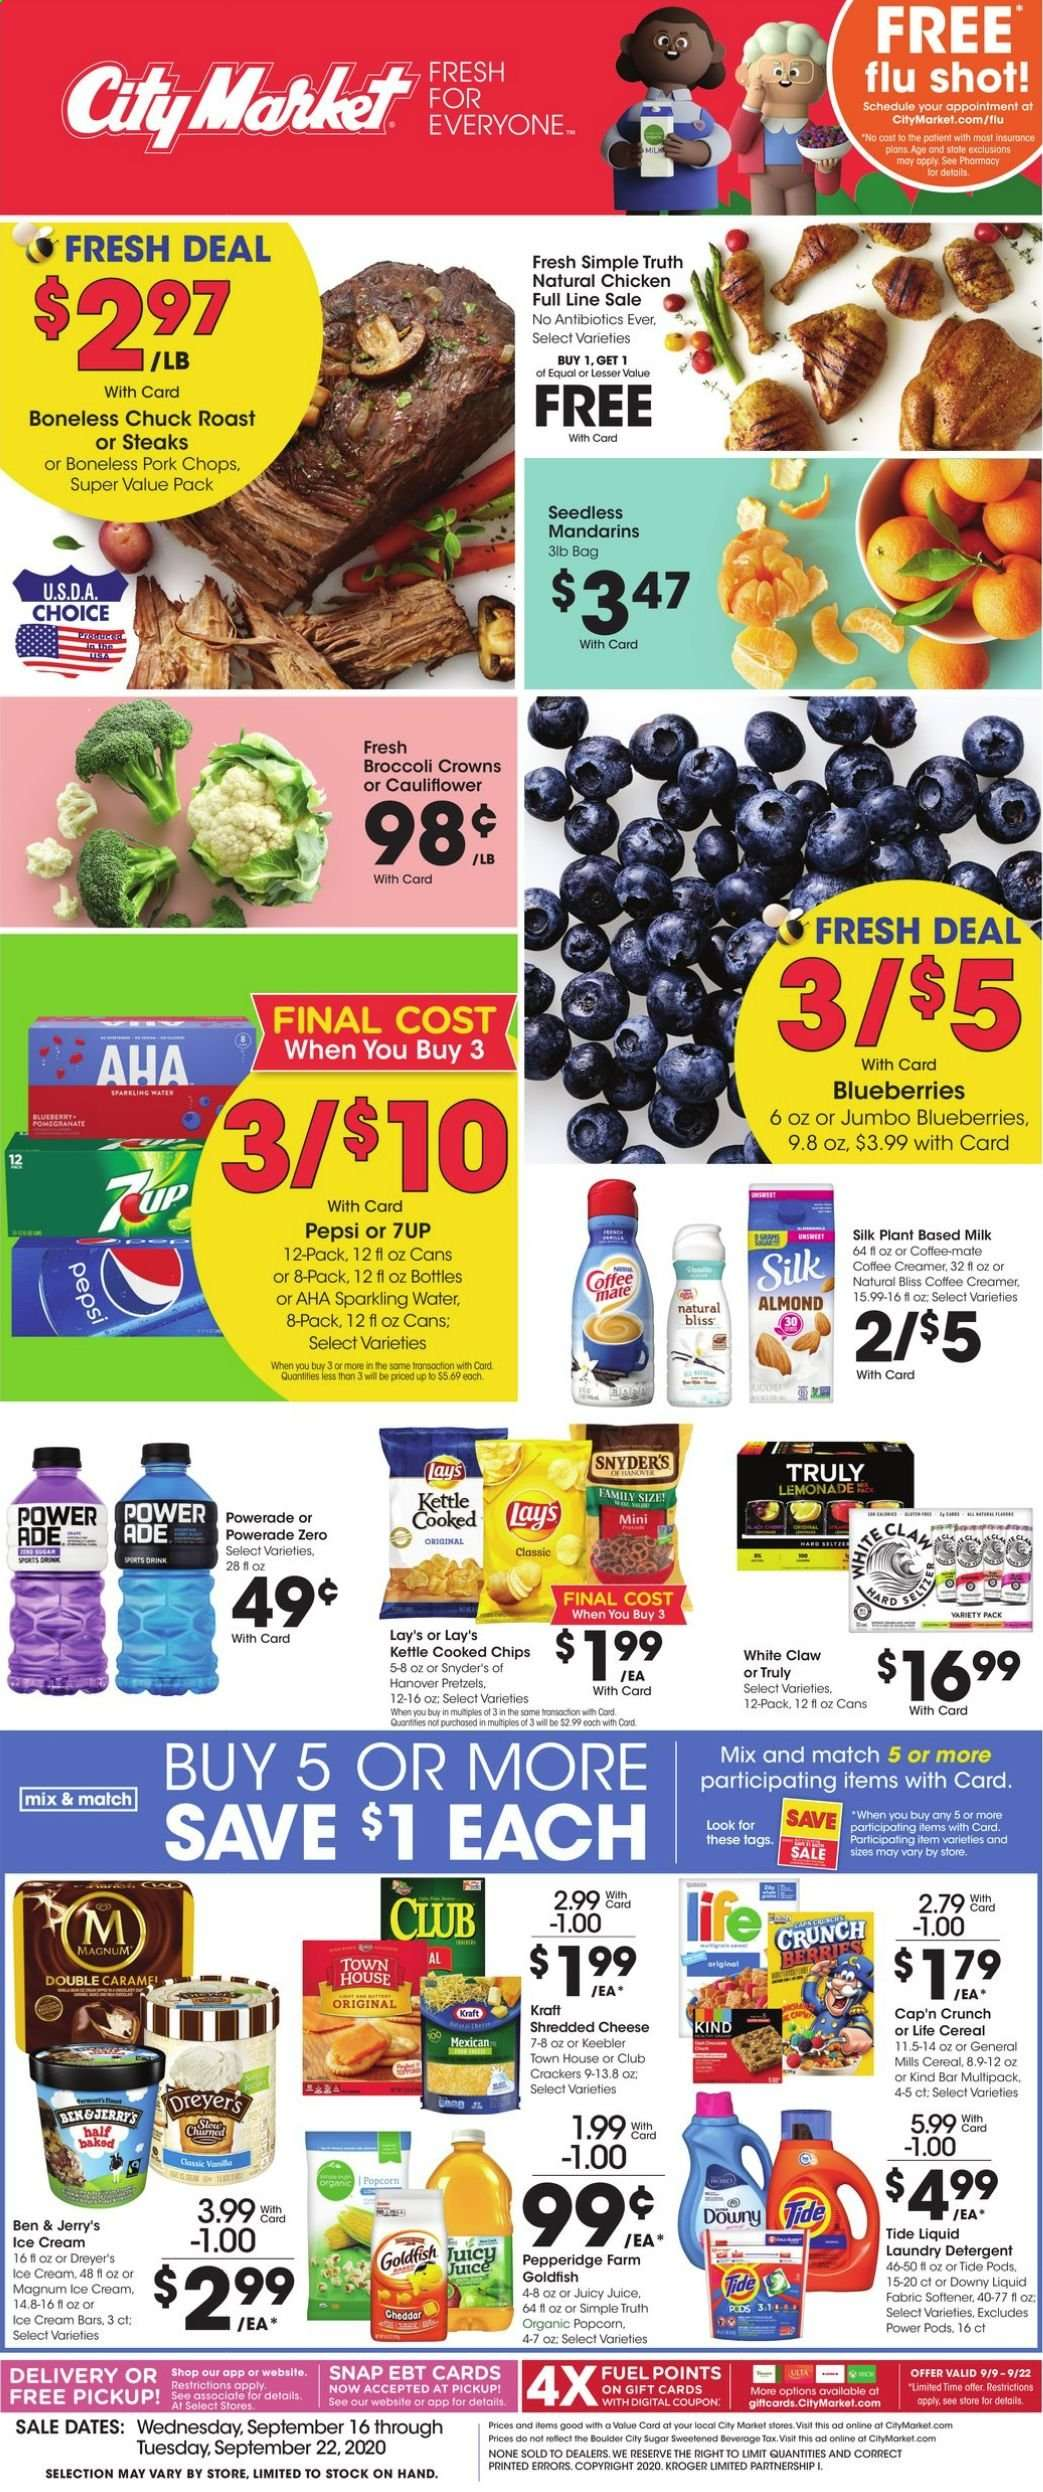 City Market Flyer - 09.16.2020 - 09.22.2020 - Sales products - bag, blueberries, broccoli, cap, cauliflower, cereals, Coffee-Mate, detergent, Downy, fuel, lemonade, Magnum, milk, shredded cheese, sugar, Tide, ice cream, ice cream bars, pork chops, pork meat, powerade, pretzels, chicken, Pepsi, chips, cheese, juice, creamer, sparkling water, coffee creamer, softener, Lay's, laundry detergent, kettle. Page 1.